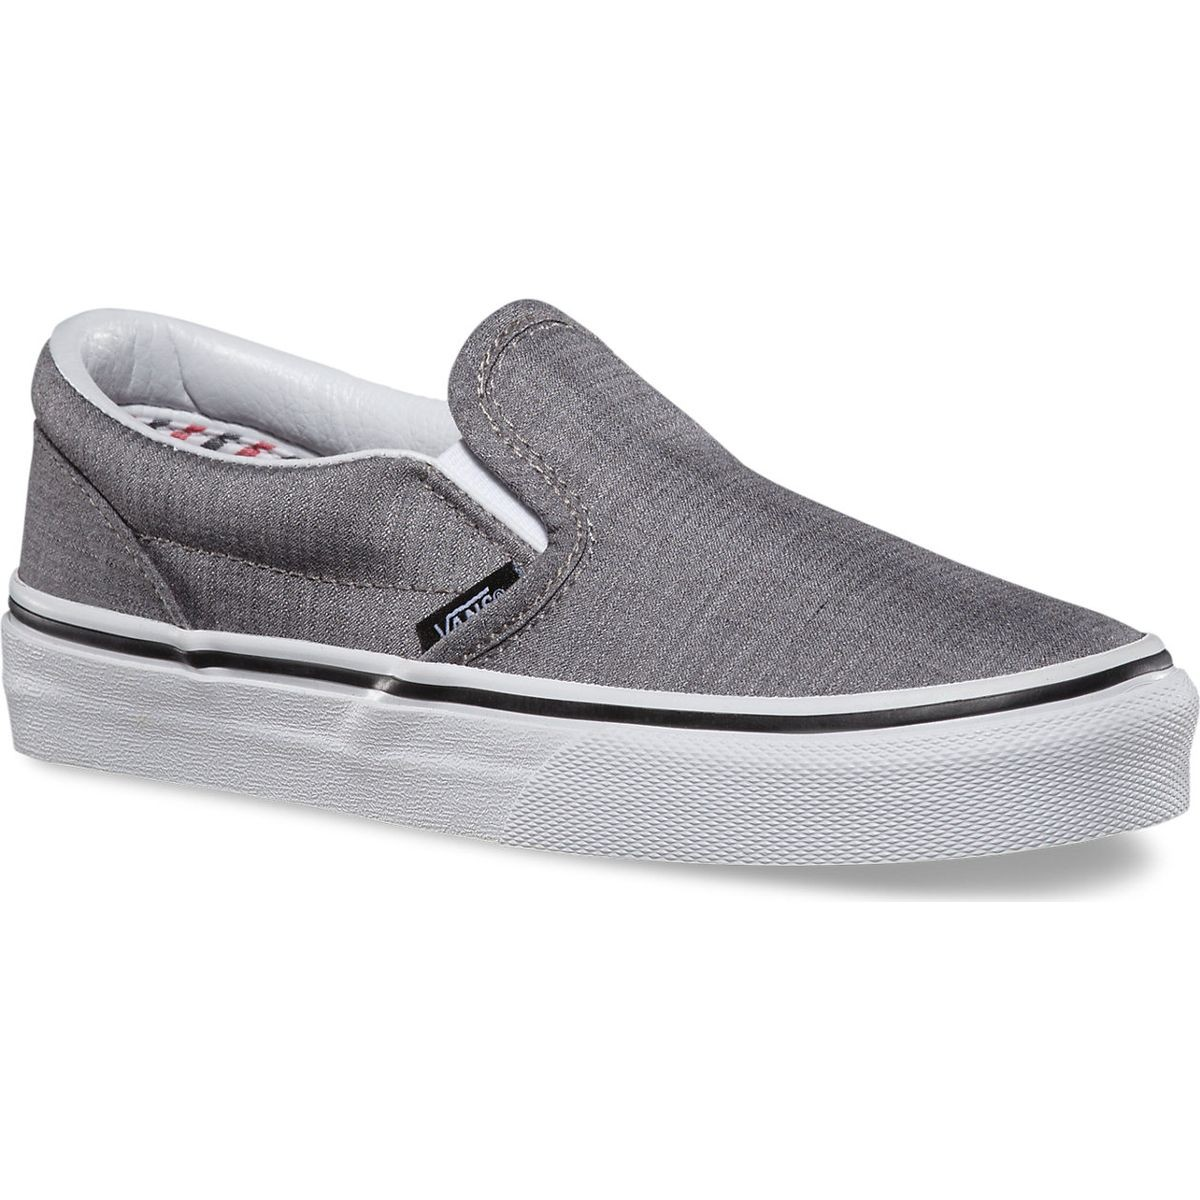 Vans Classic Slip-On Suiting Stripes Little Kid Big Kid Shoes - Charcoal  61ca81530